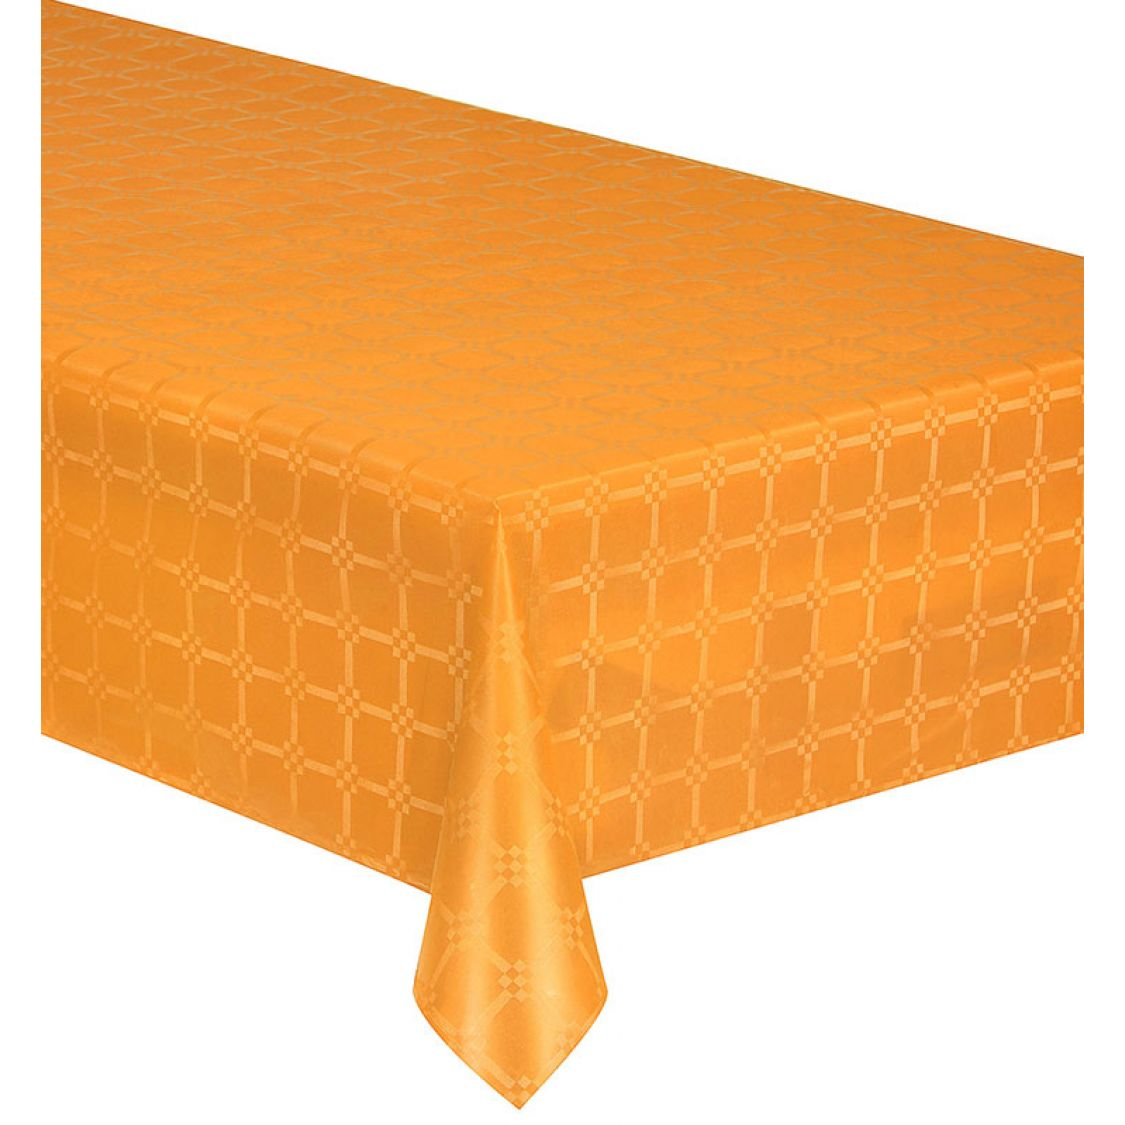 Nappe Papier Damassée couleur Orange 6m x 1m20